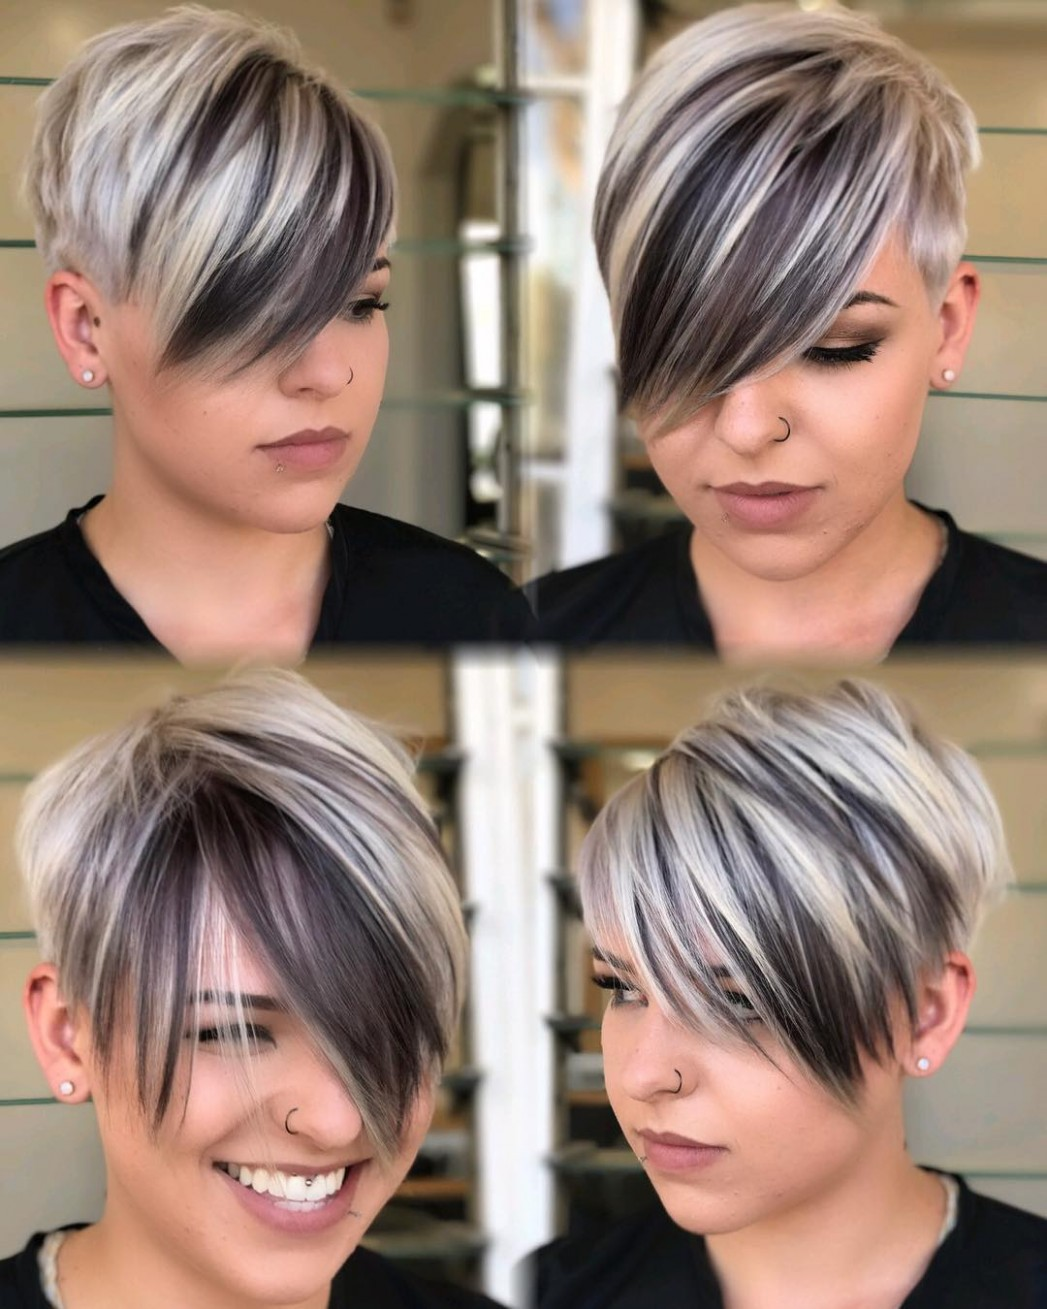 8 Short Hairstyles For Round Faces With Slimming Effect Hadviser Pixie Cut For Chubby Face